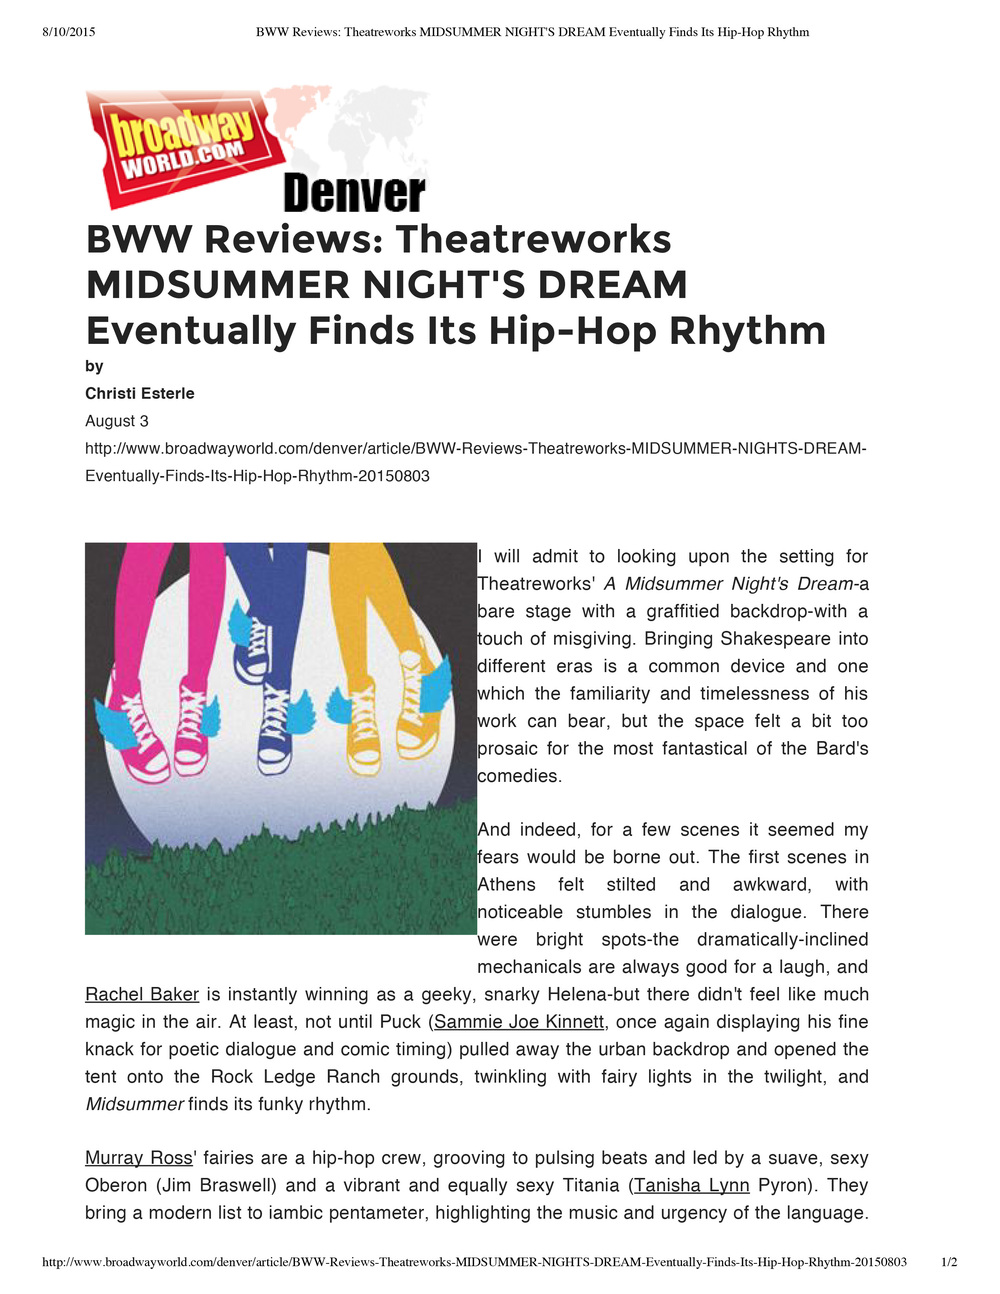 BWW Reviews_ Theatreworks MIDSUMMER NIGHT'S DREAM Eventually Finds Its Hip-Hop Rhythm.pdf-1.jpg